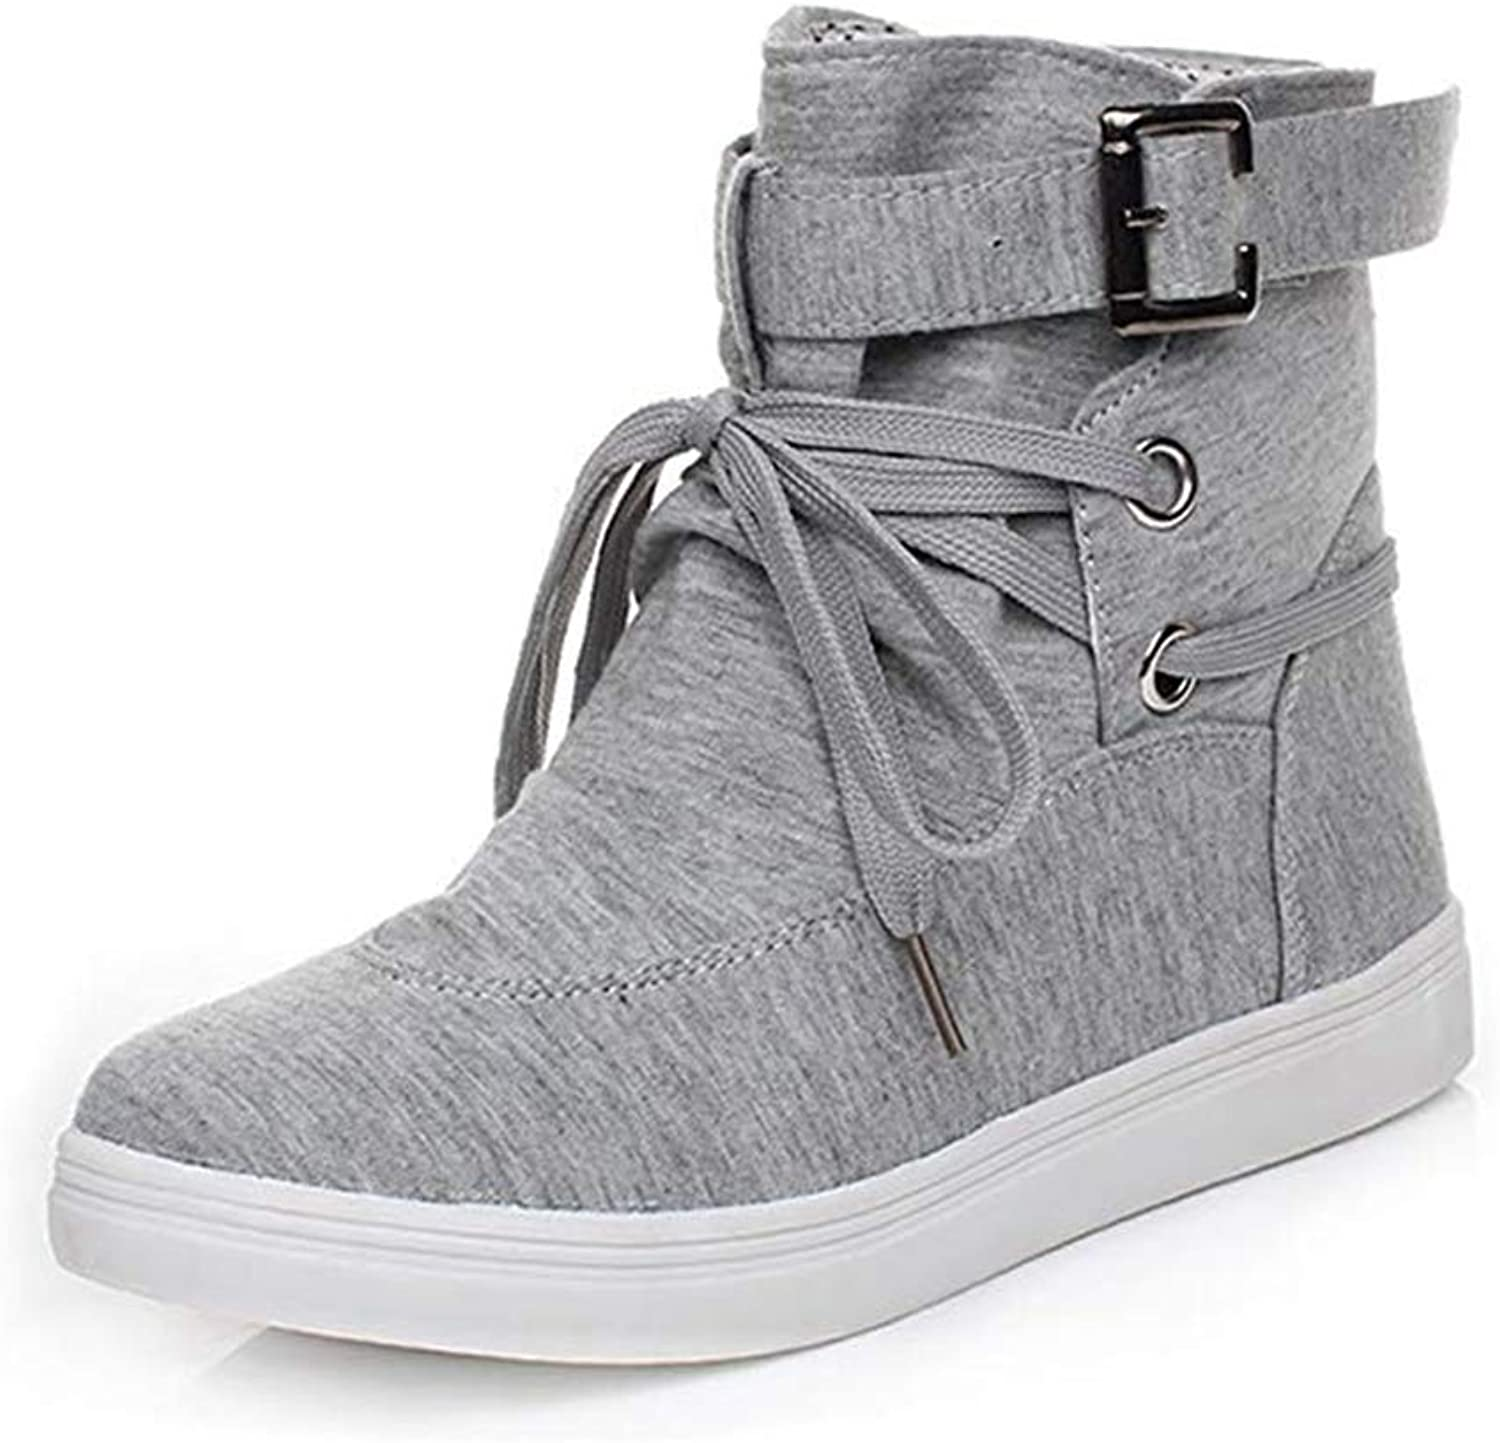 T-JULY Ladies Flat Boots Spring Autumn Winter Ankle Boots Solid Sneakers Buckle Canvas Women Boots High Top shoes